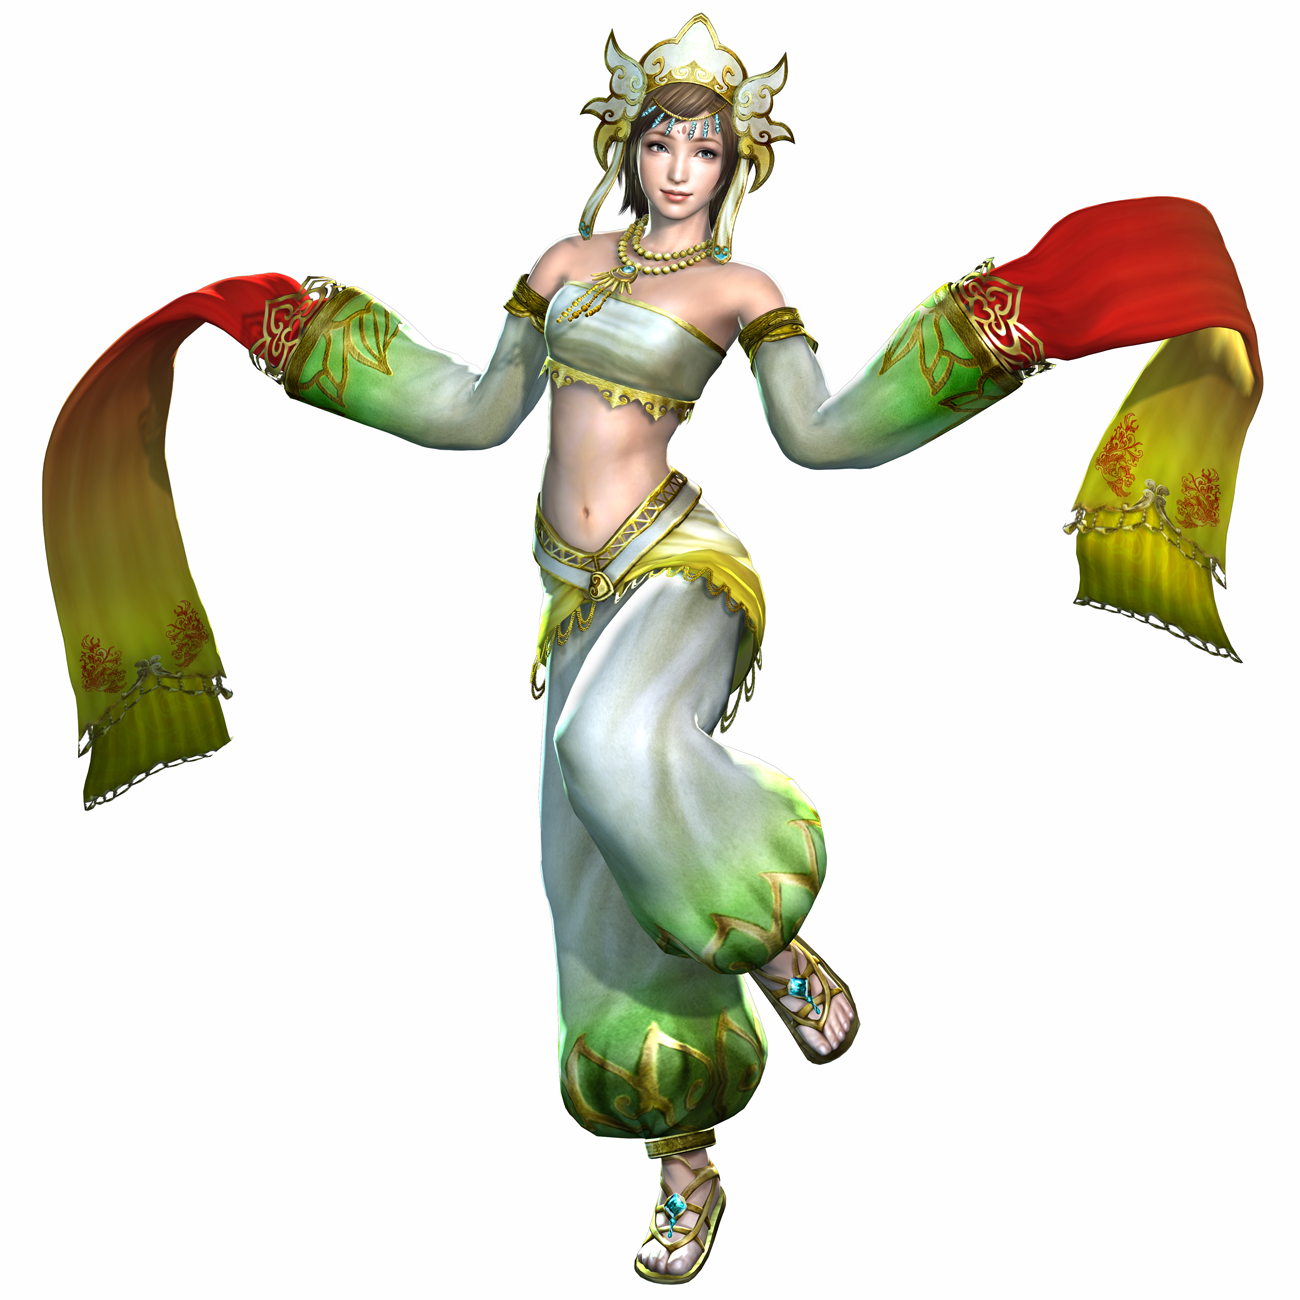 Warriors Orochi 3 Psp Nicoblog: Warriors Orochi 3